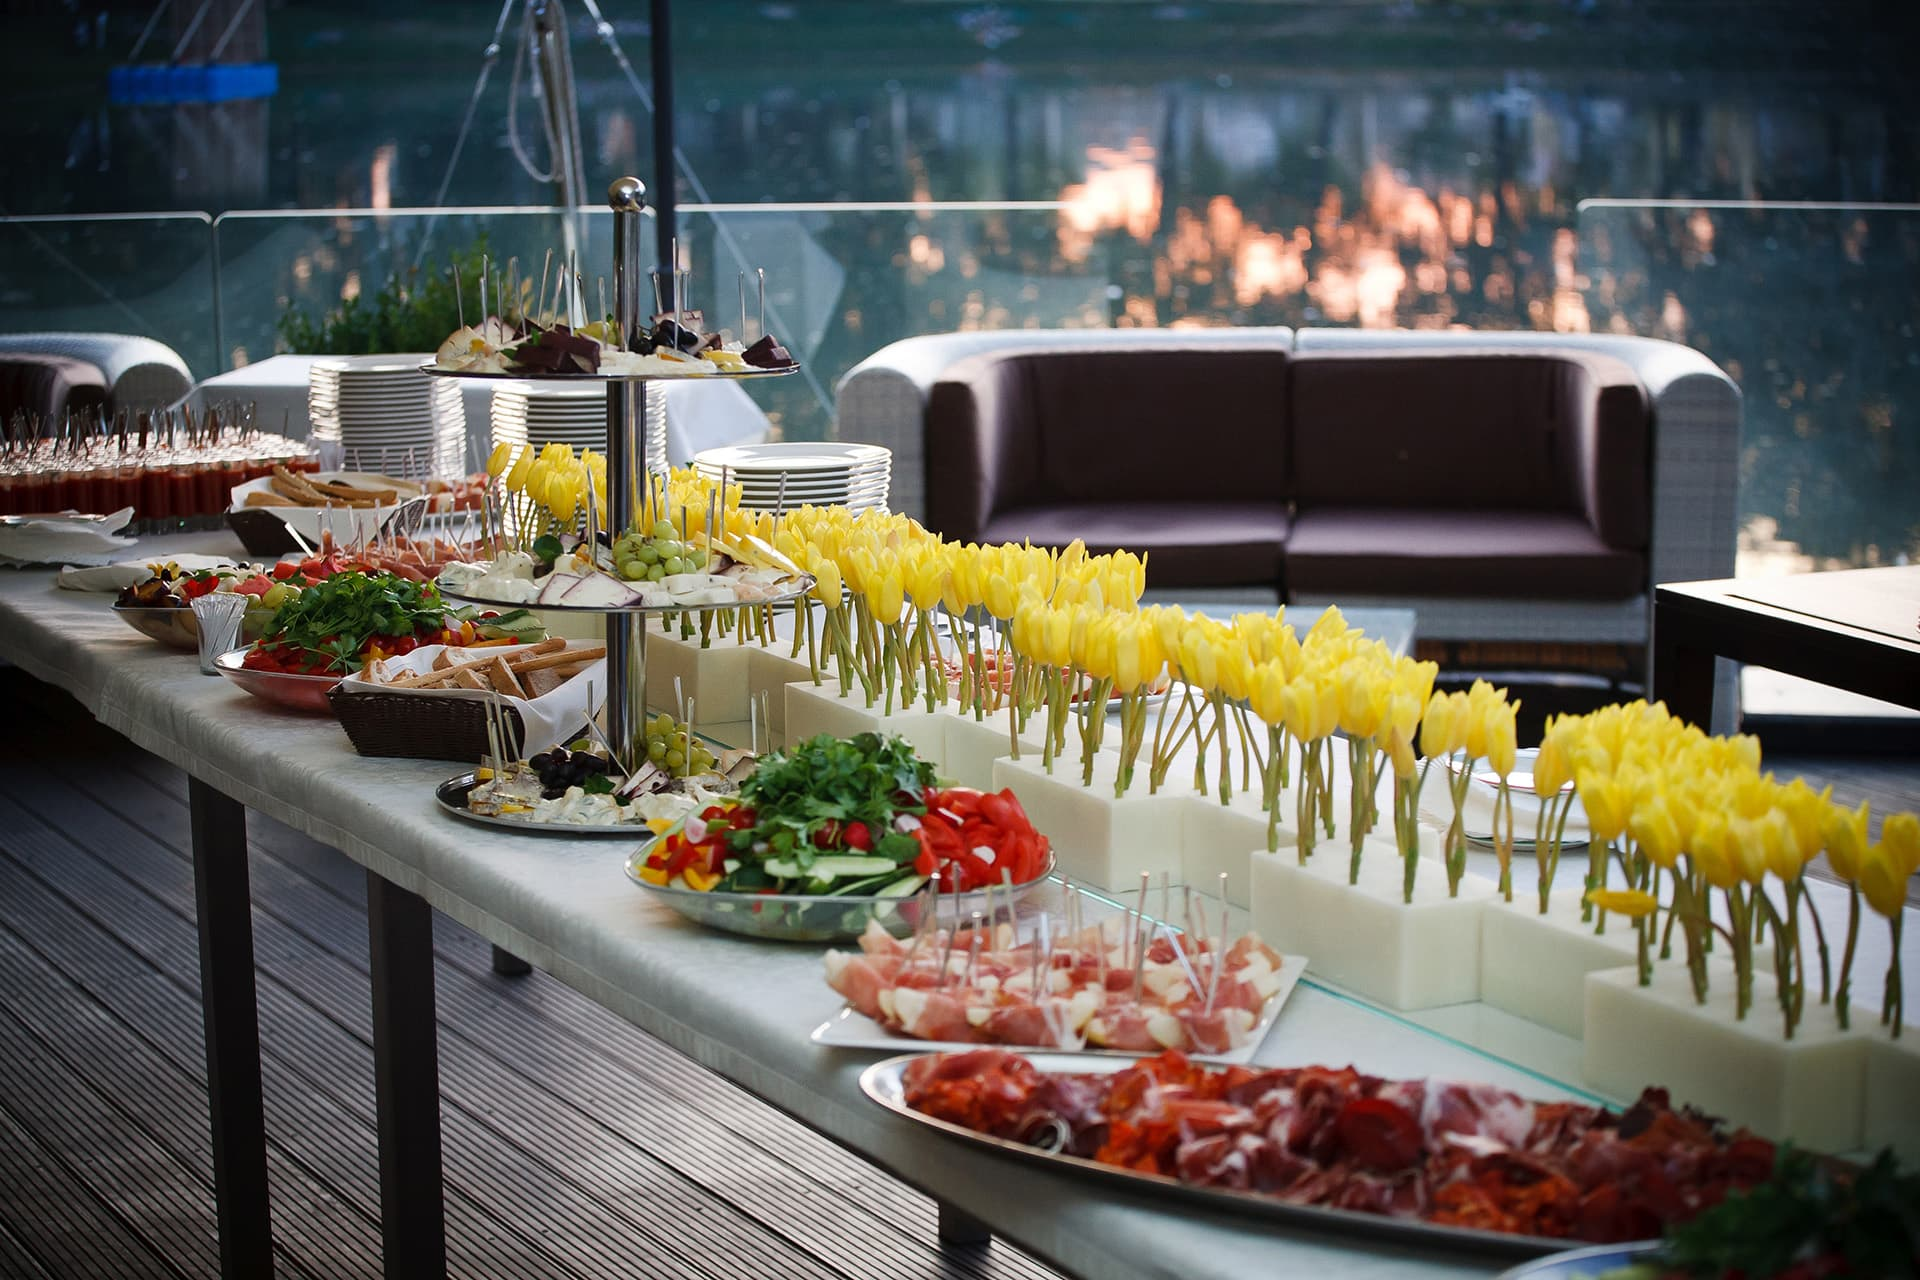 Event planner insurance with a long table of h'orderves and yellow flowers